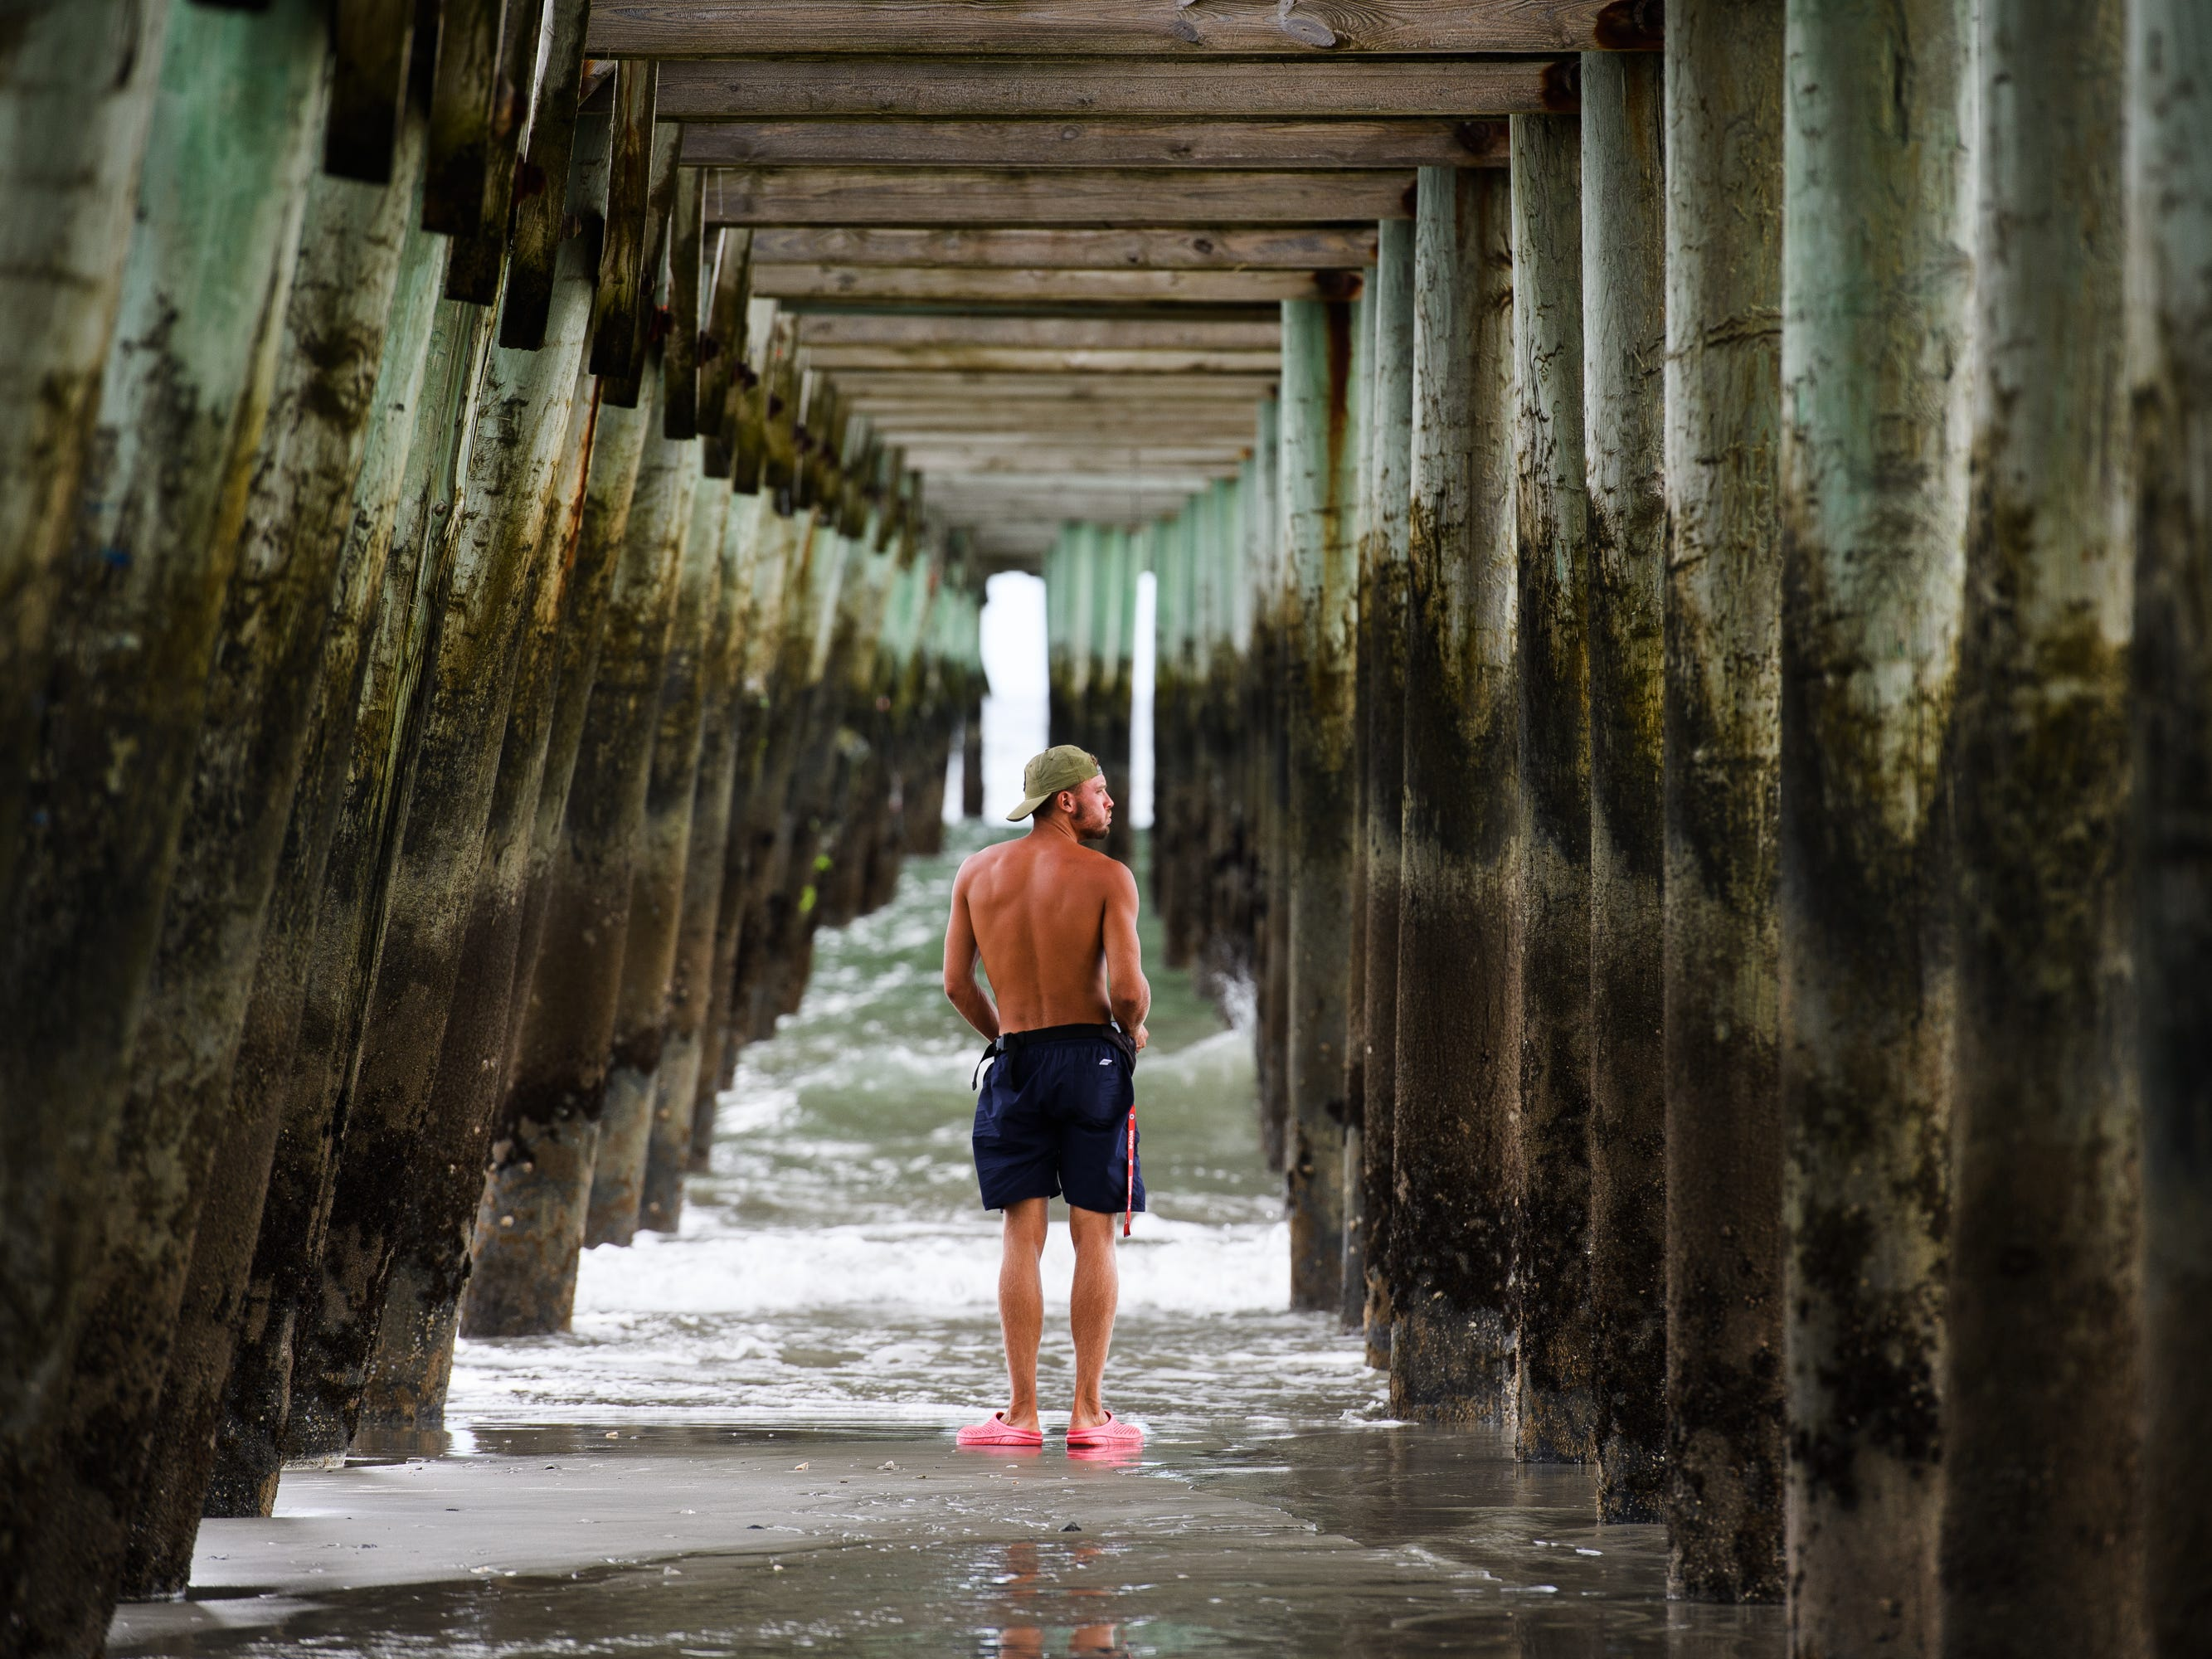 Kamil Korzec walks under the Second Avenue Pier in Myrtle Beach days before Hurricane Florence is expected to hit the coast of North and South Carolina on Tuesday, Sept. 11, 2018.